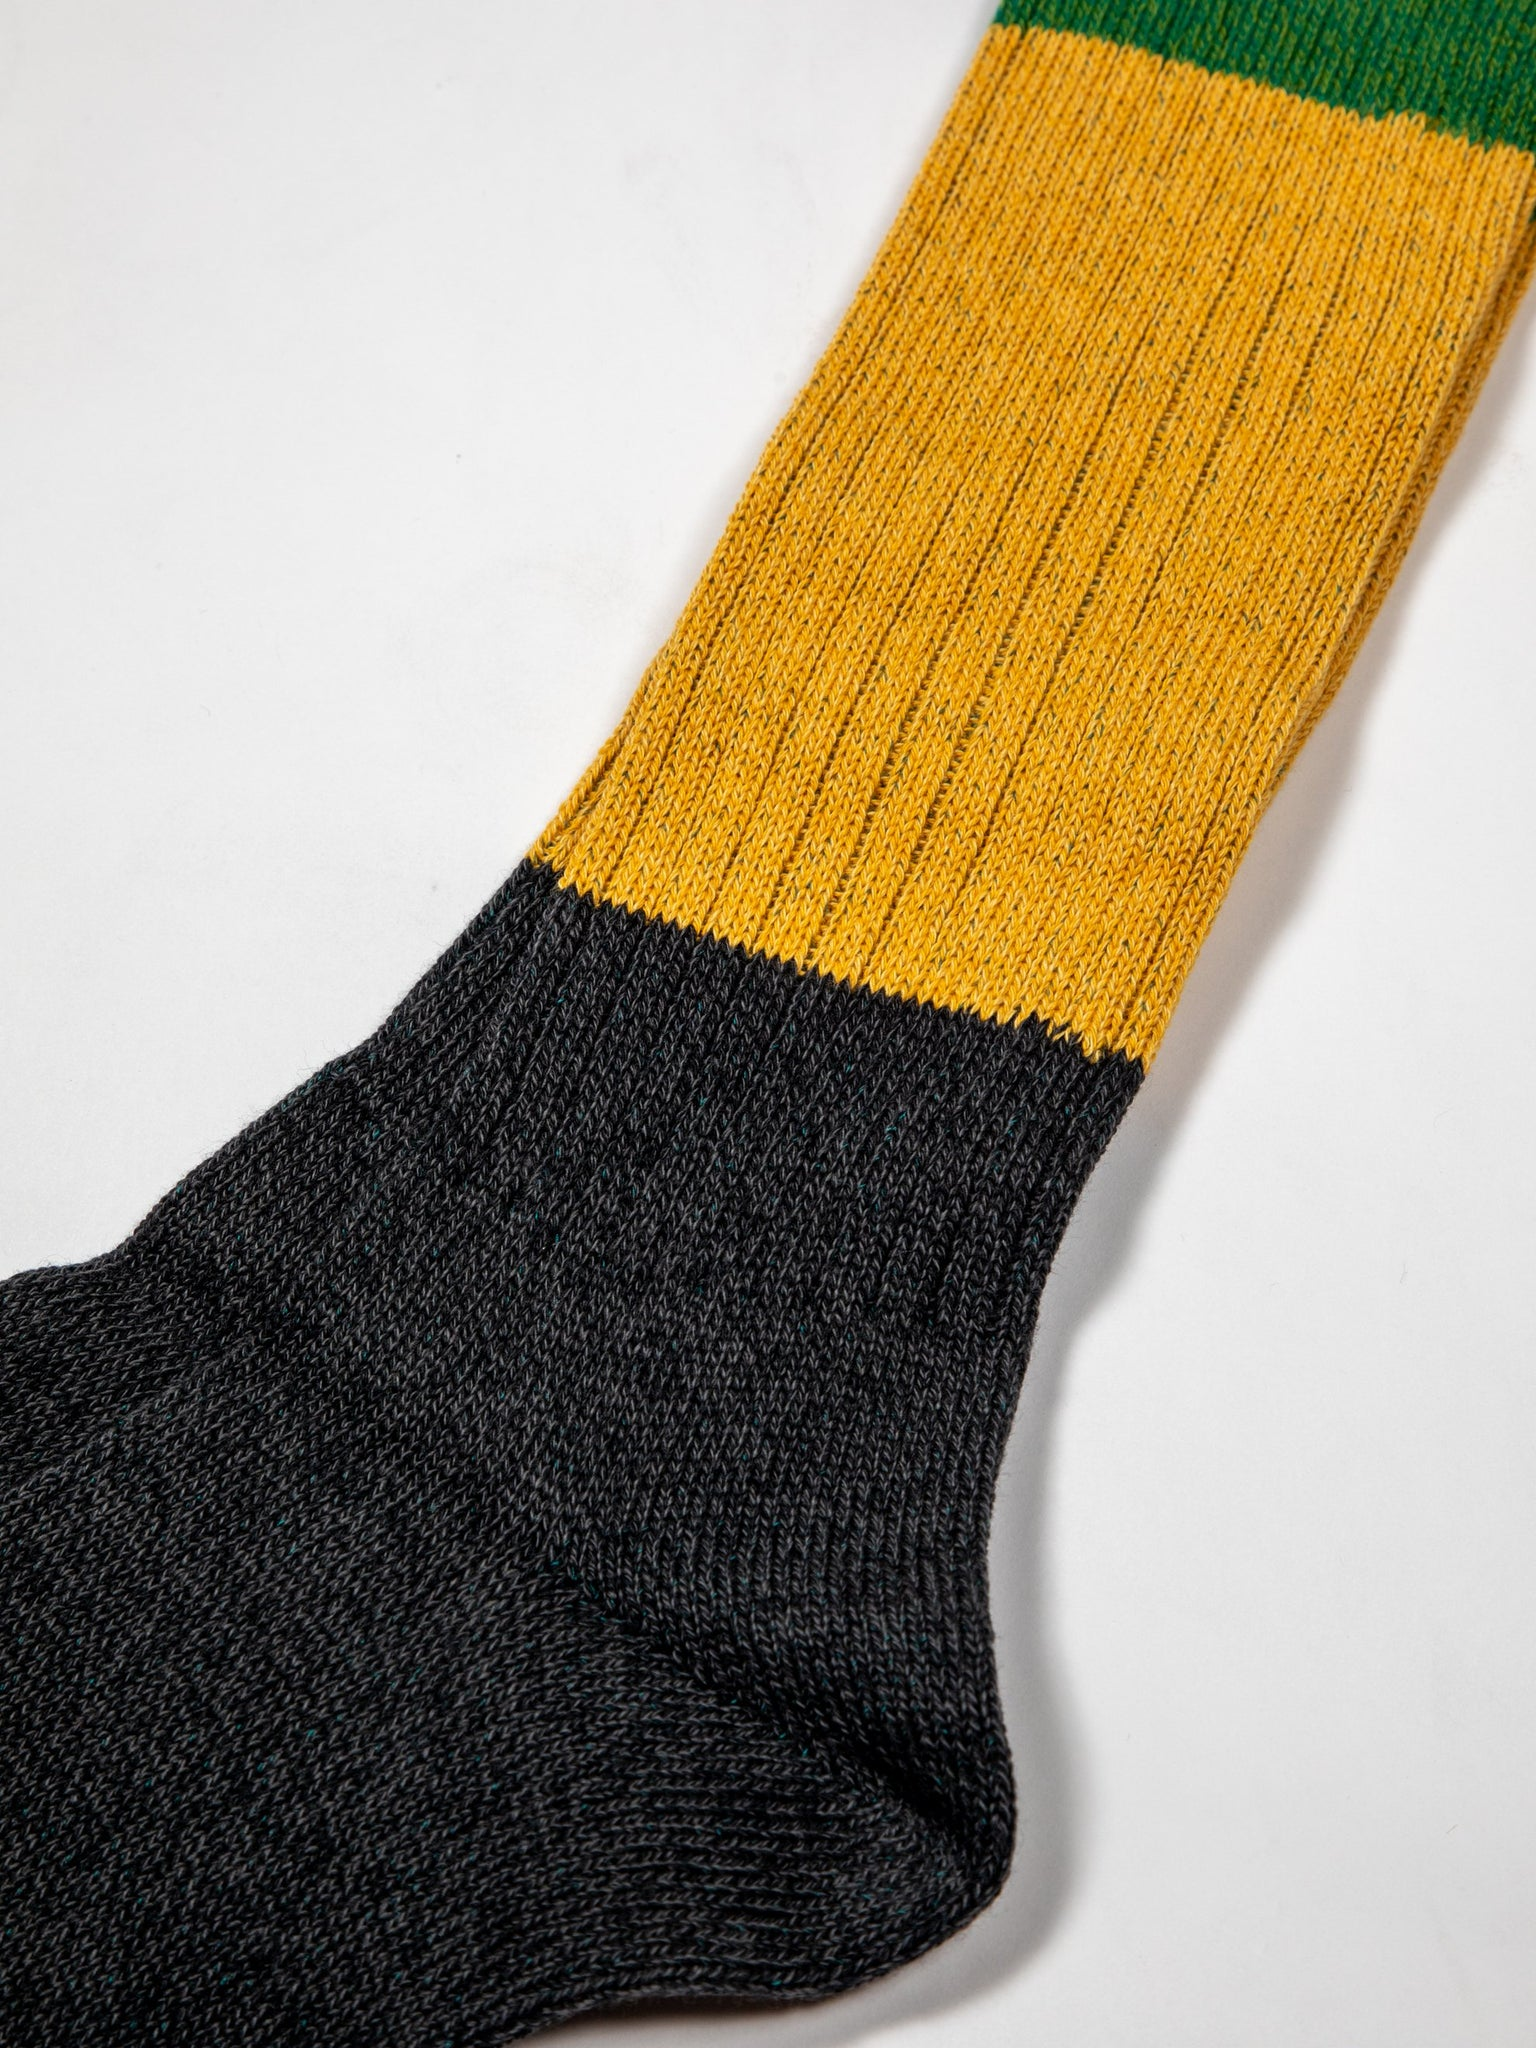 96-yarns-rasta-skaters-knee-high-socks